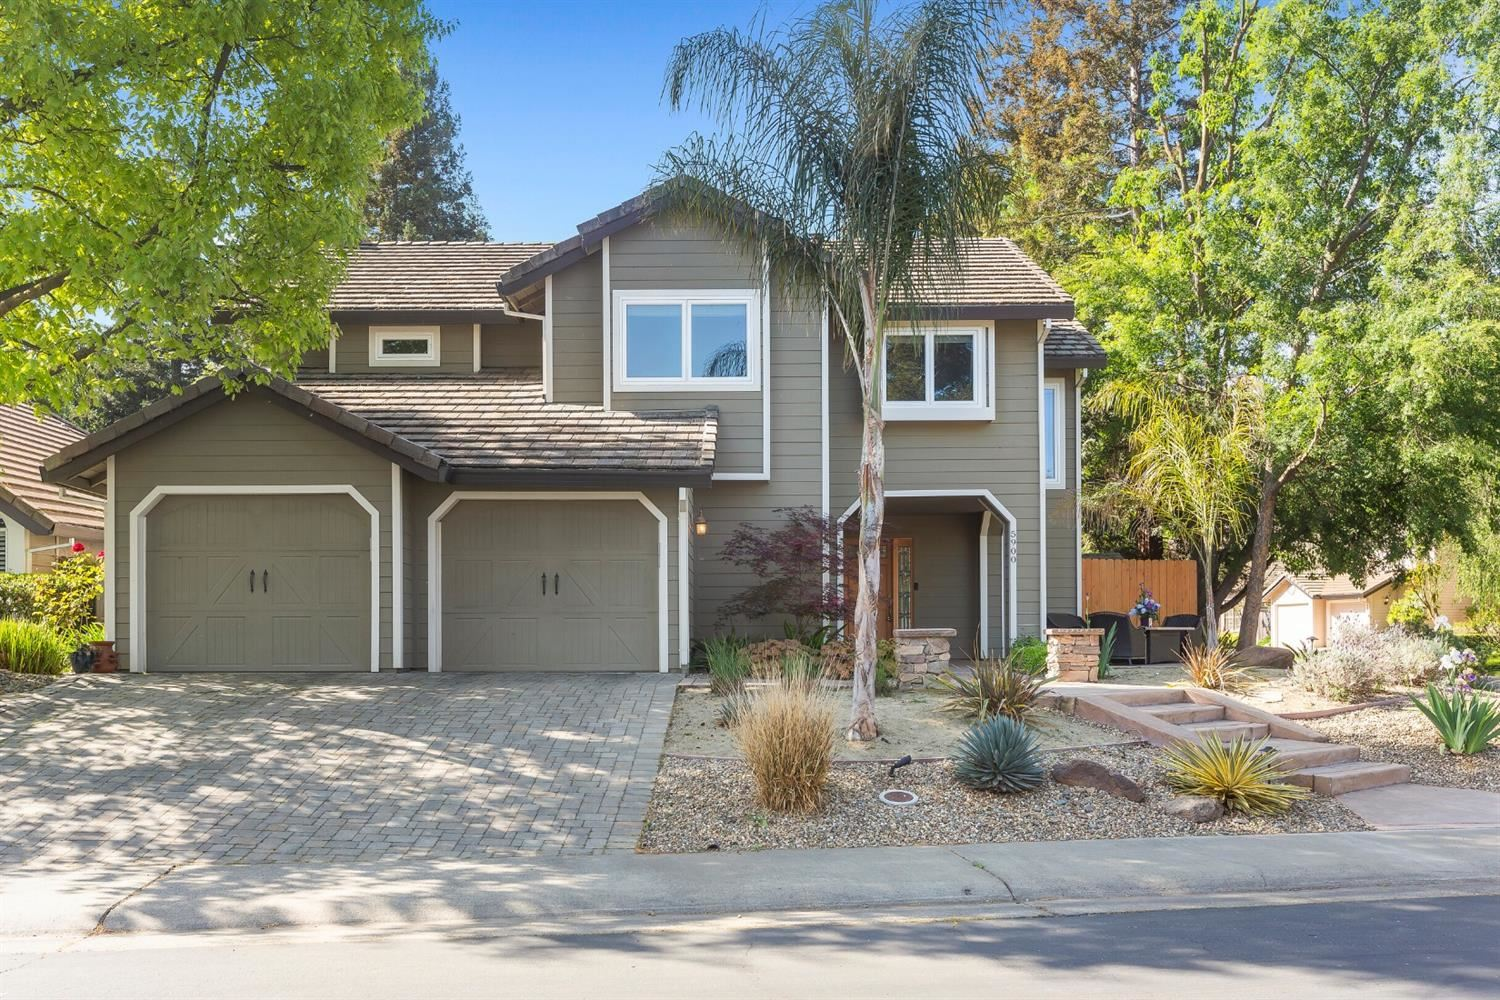 Photo of 5900 Whalers Cove Court, Elk Grove, CA 95758 (MLS # 221037383)